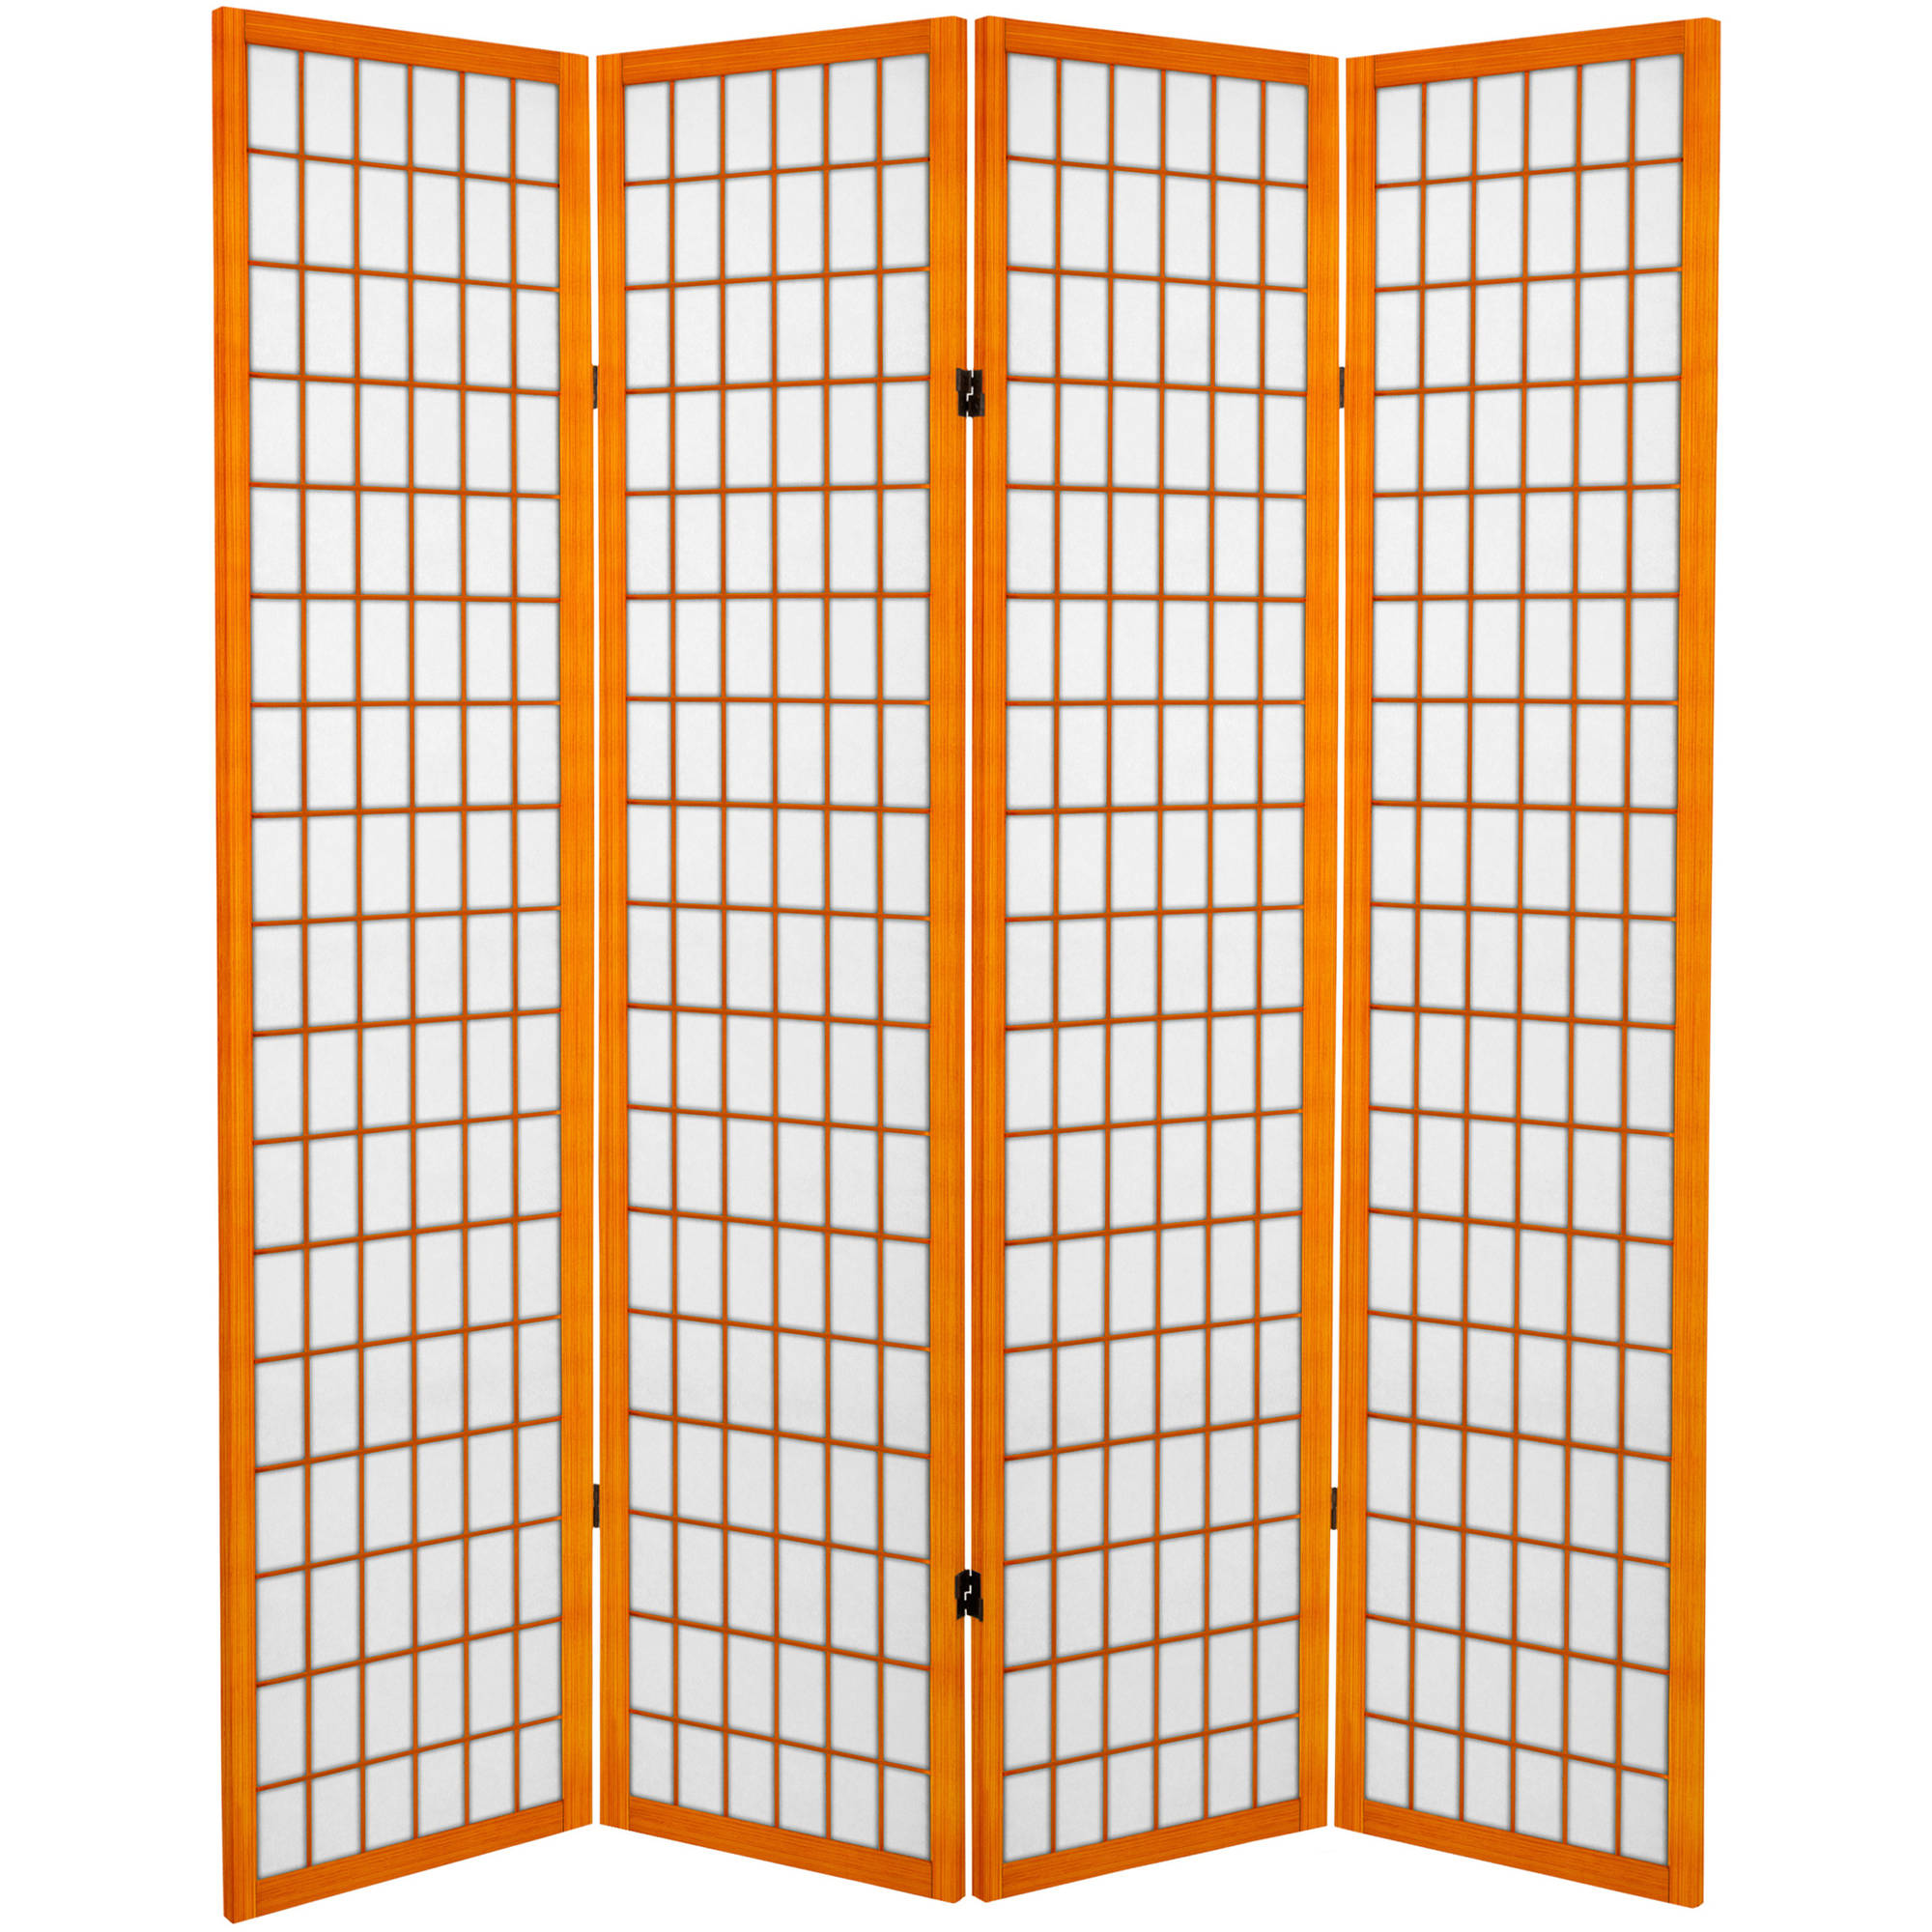 6' Tall Canvas Window Pane Room Divider